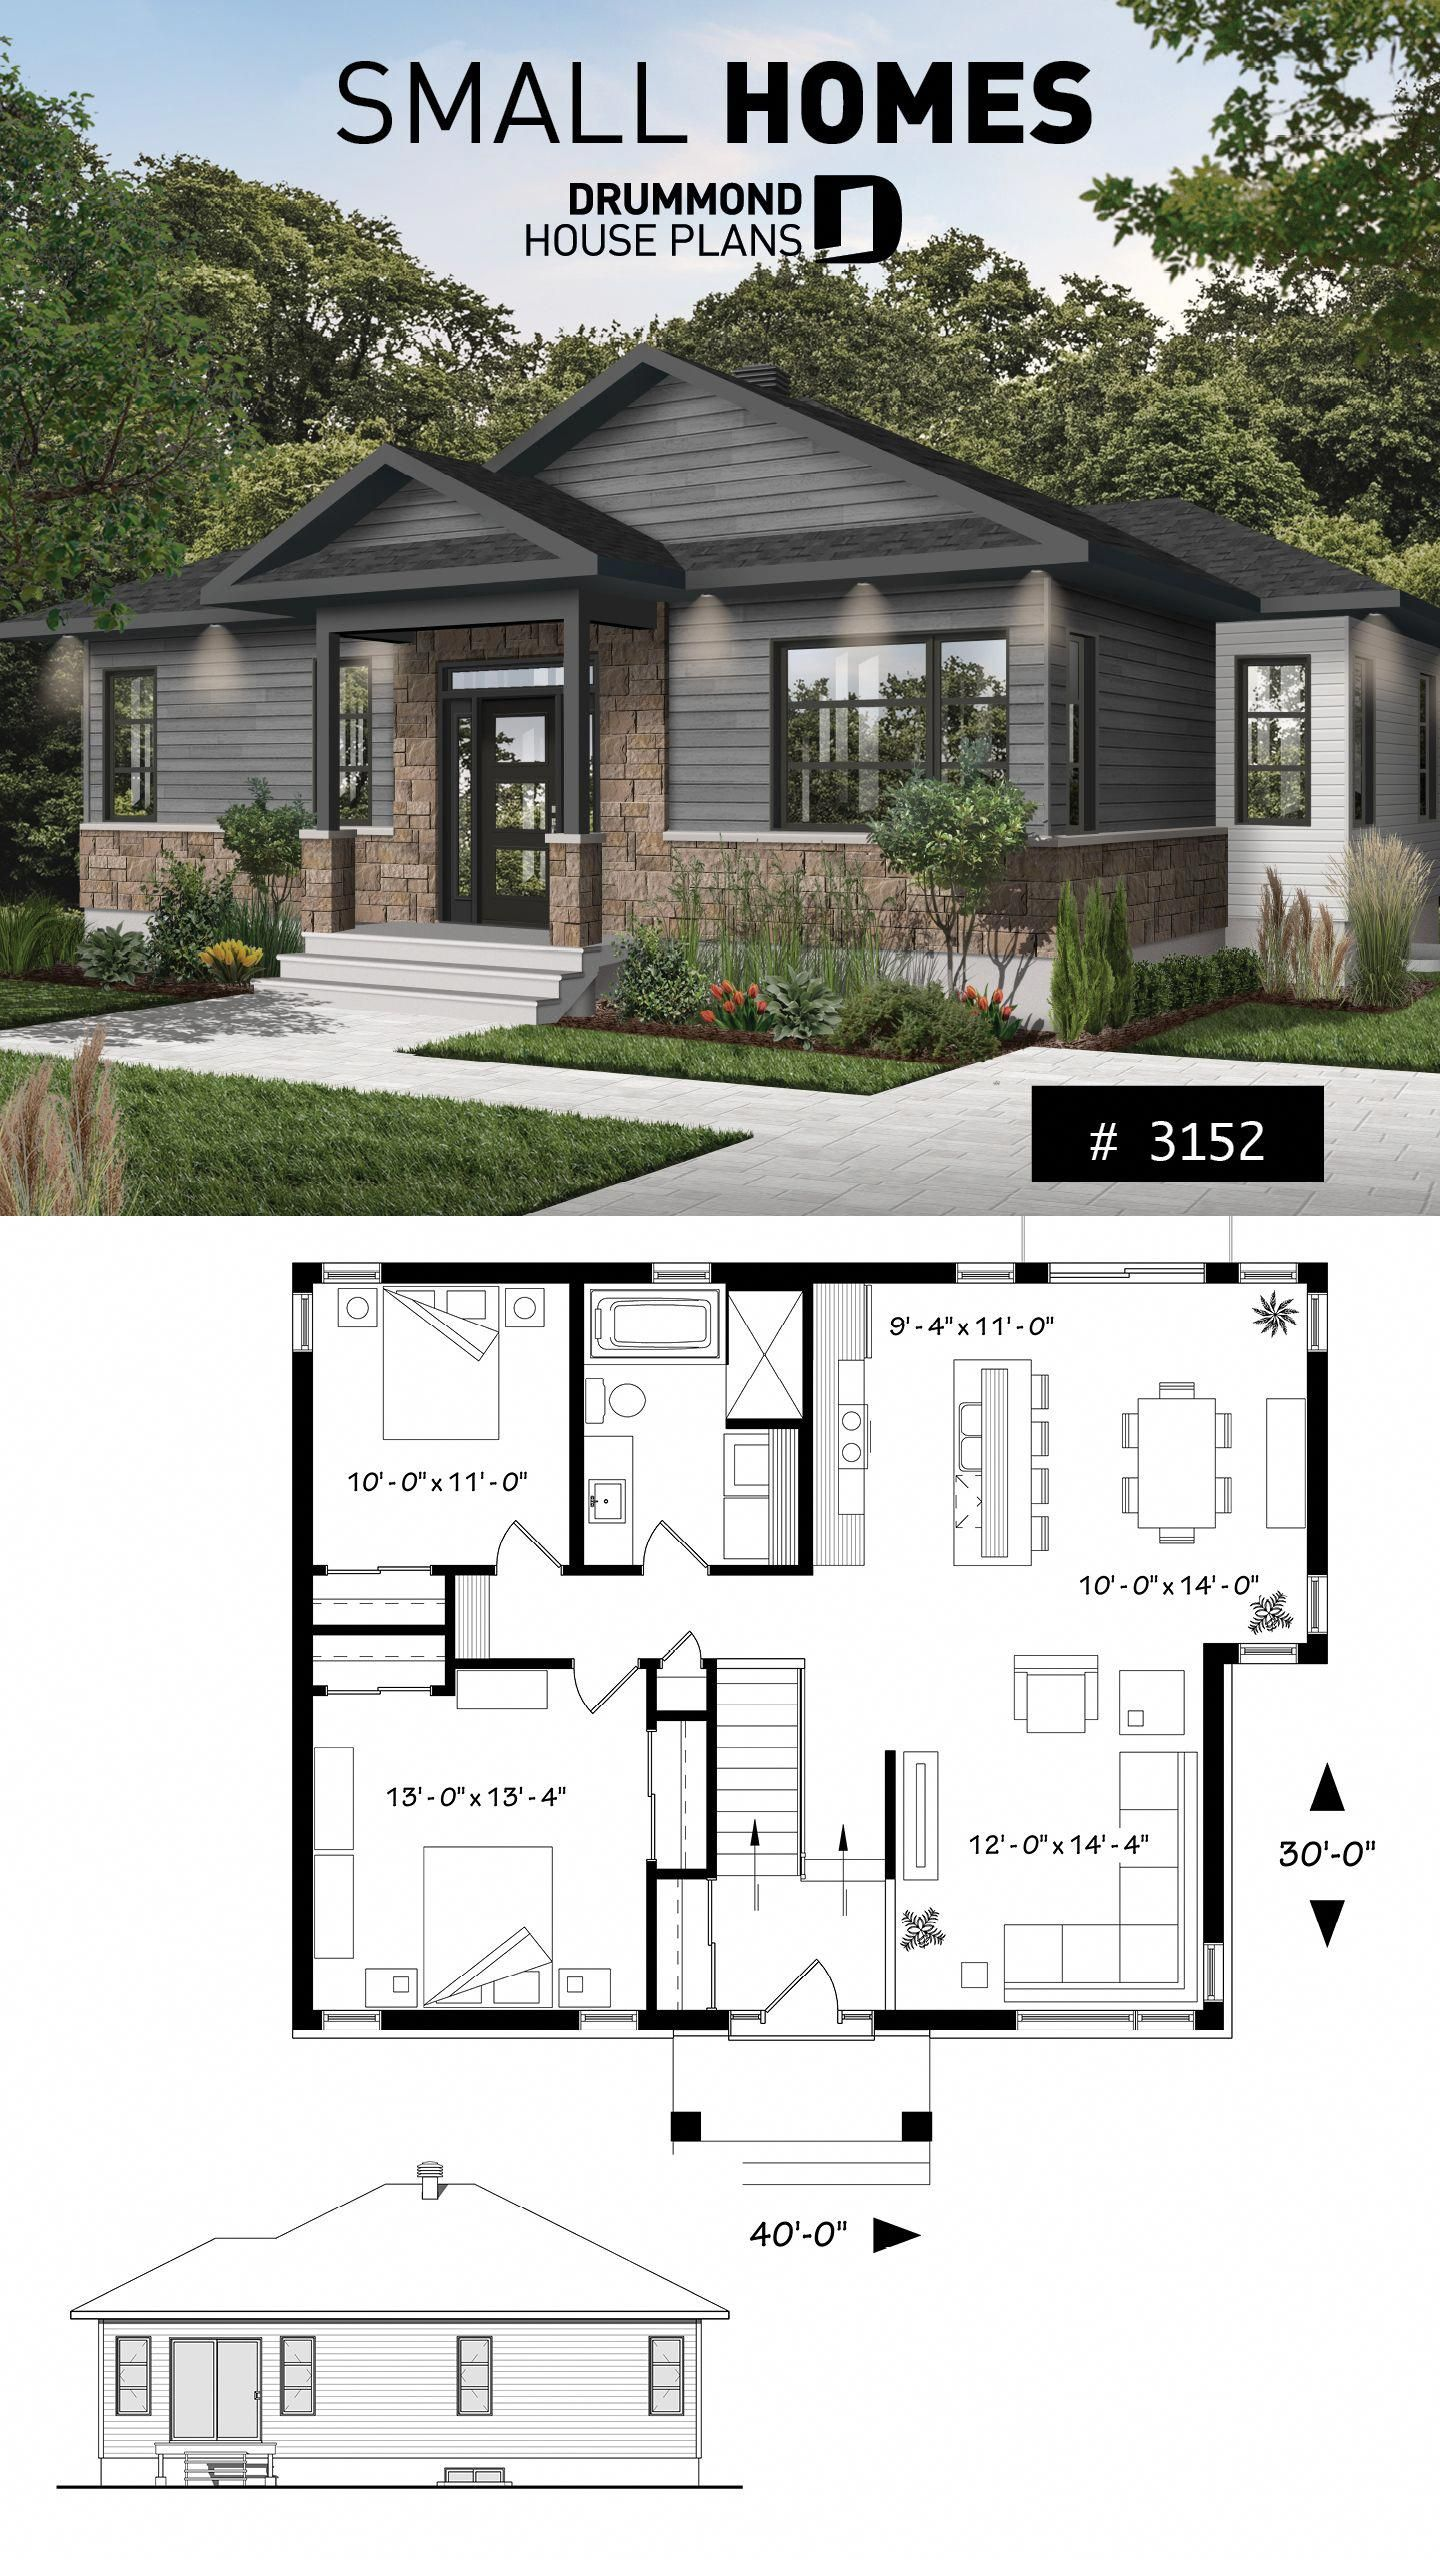 Categorymodern Home Decor Bathroom Saleprice 43 In 2020 Rustic House Plans Sims House Plans Drummond House Plans